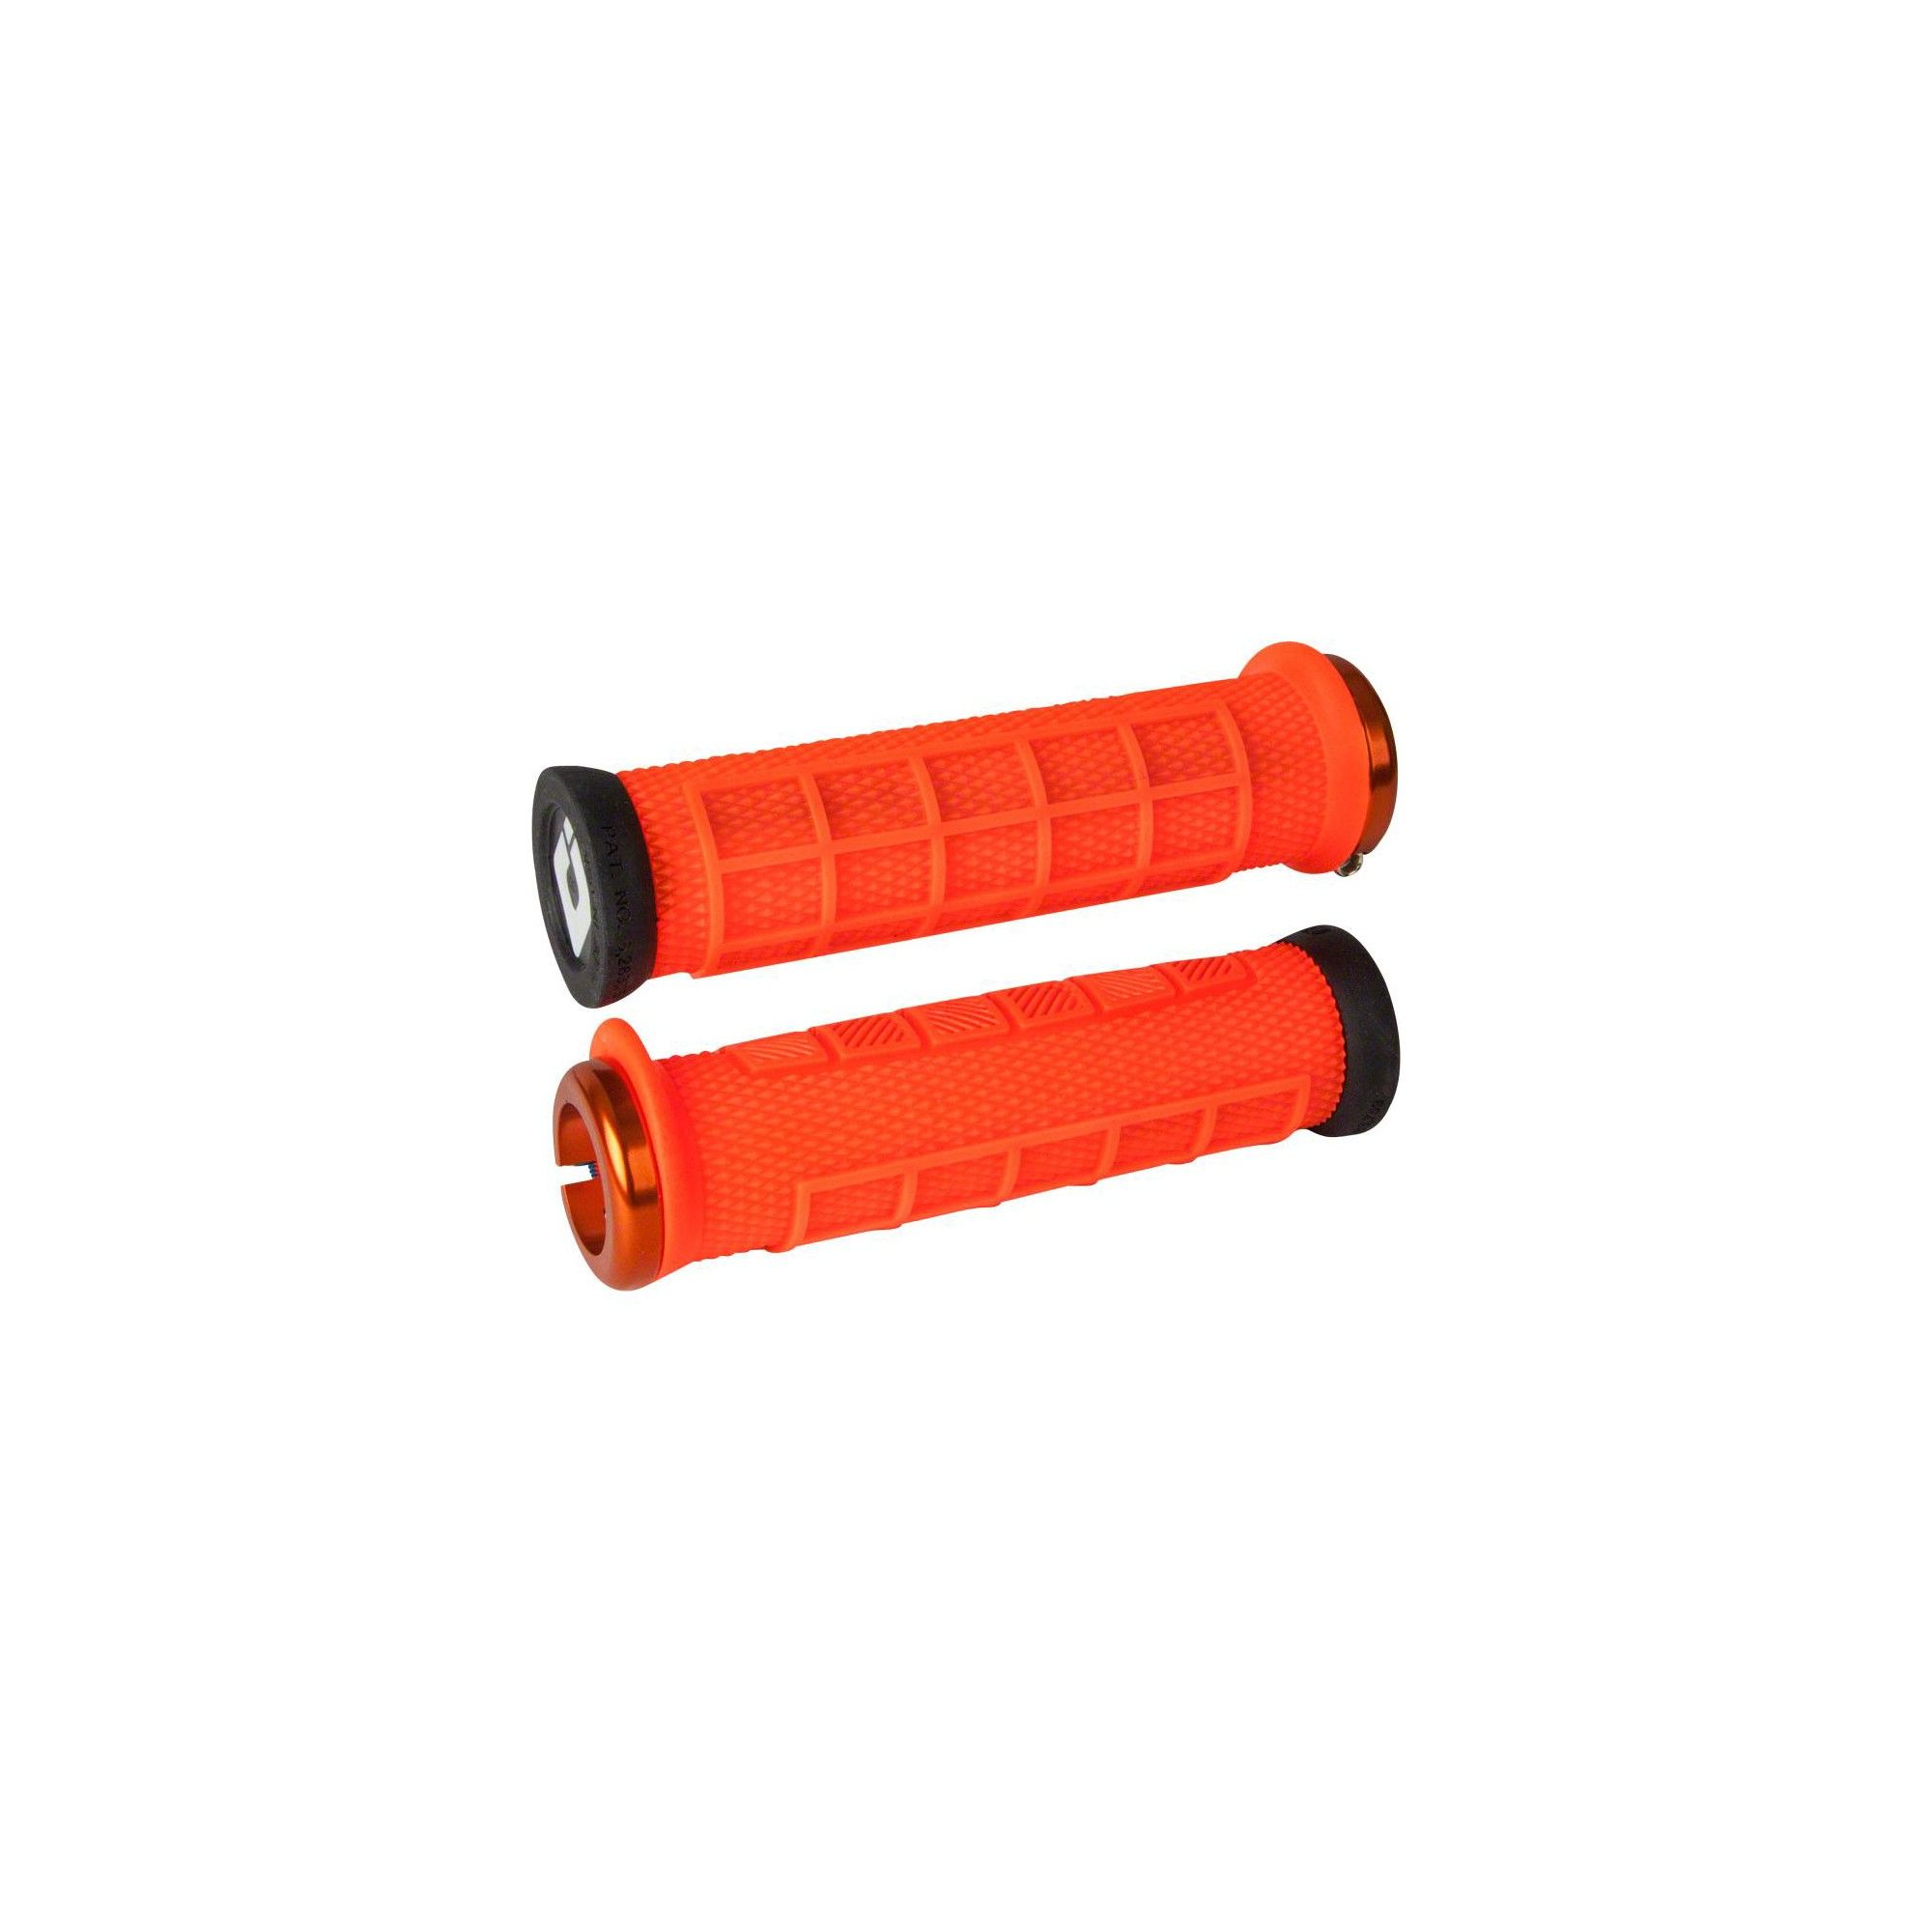 ODI Elite Pro Lock-On Grips Orange with Orange Clamps